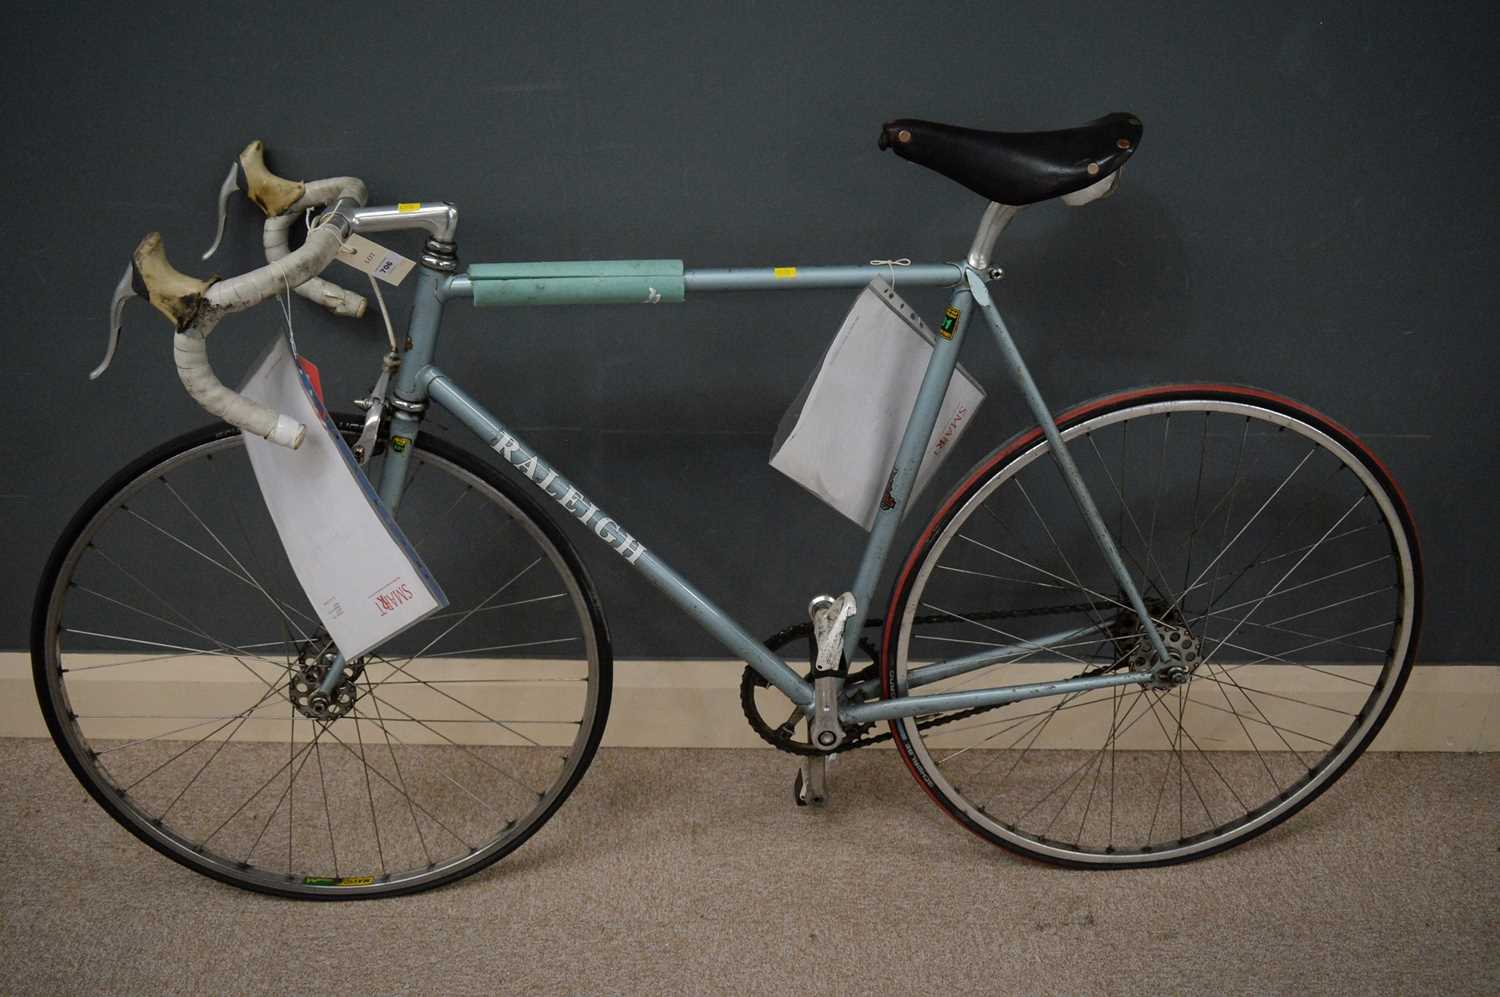 Lot 706 - A single-speed bicycle.